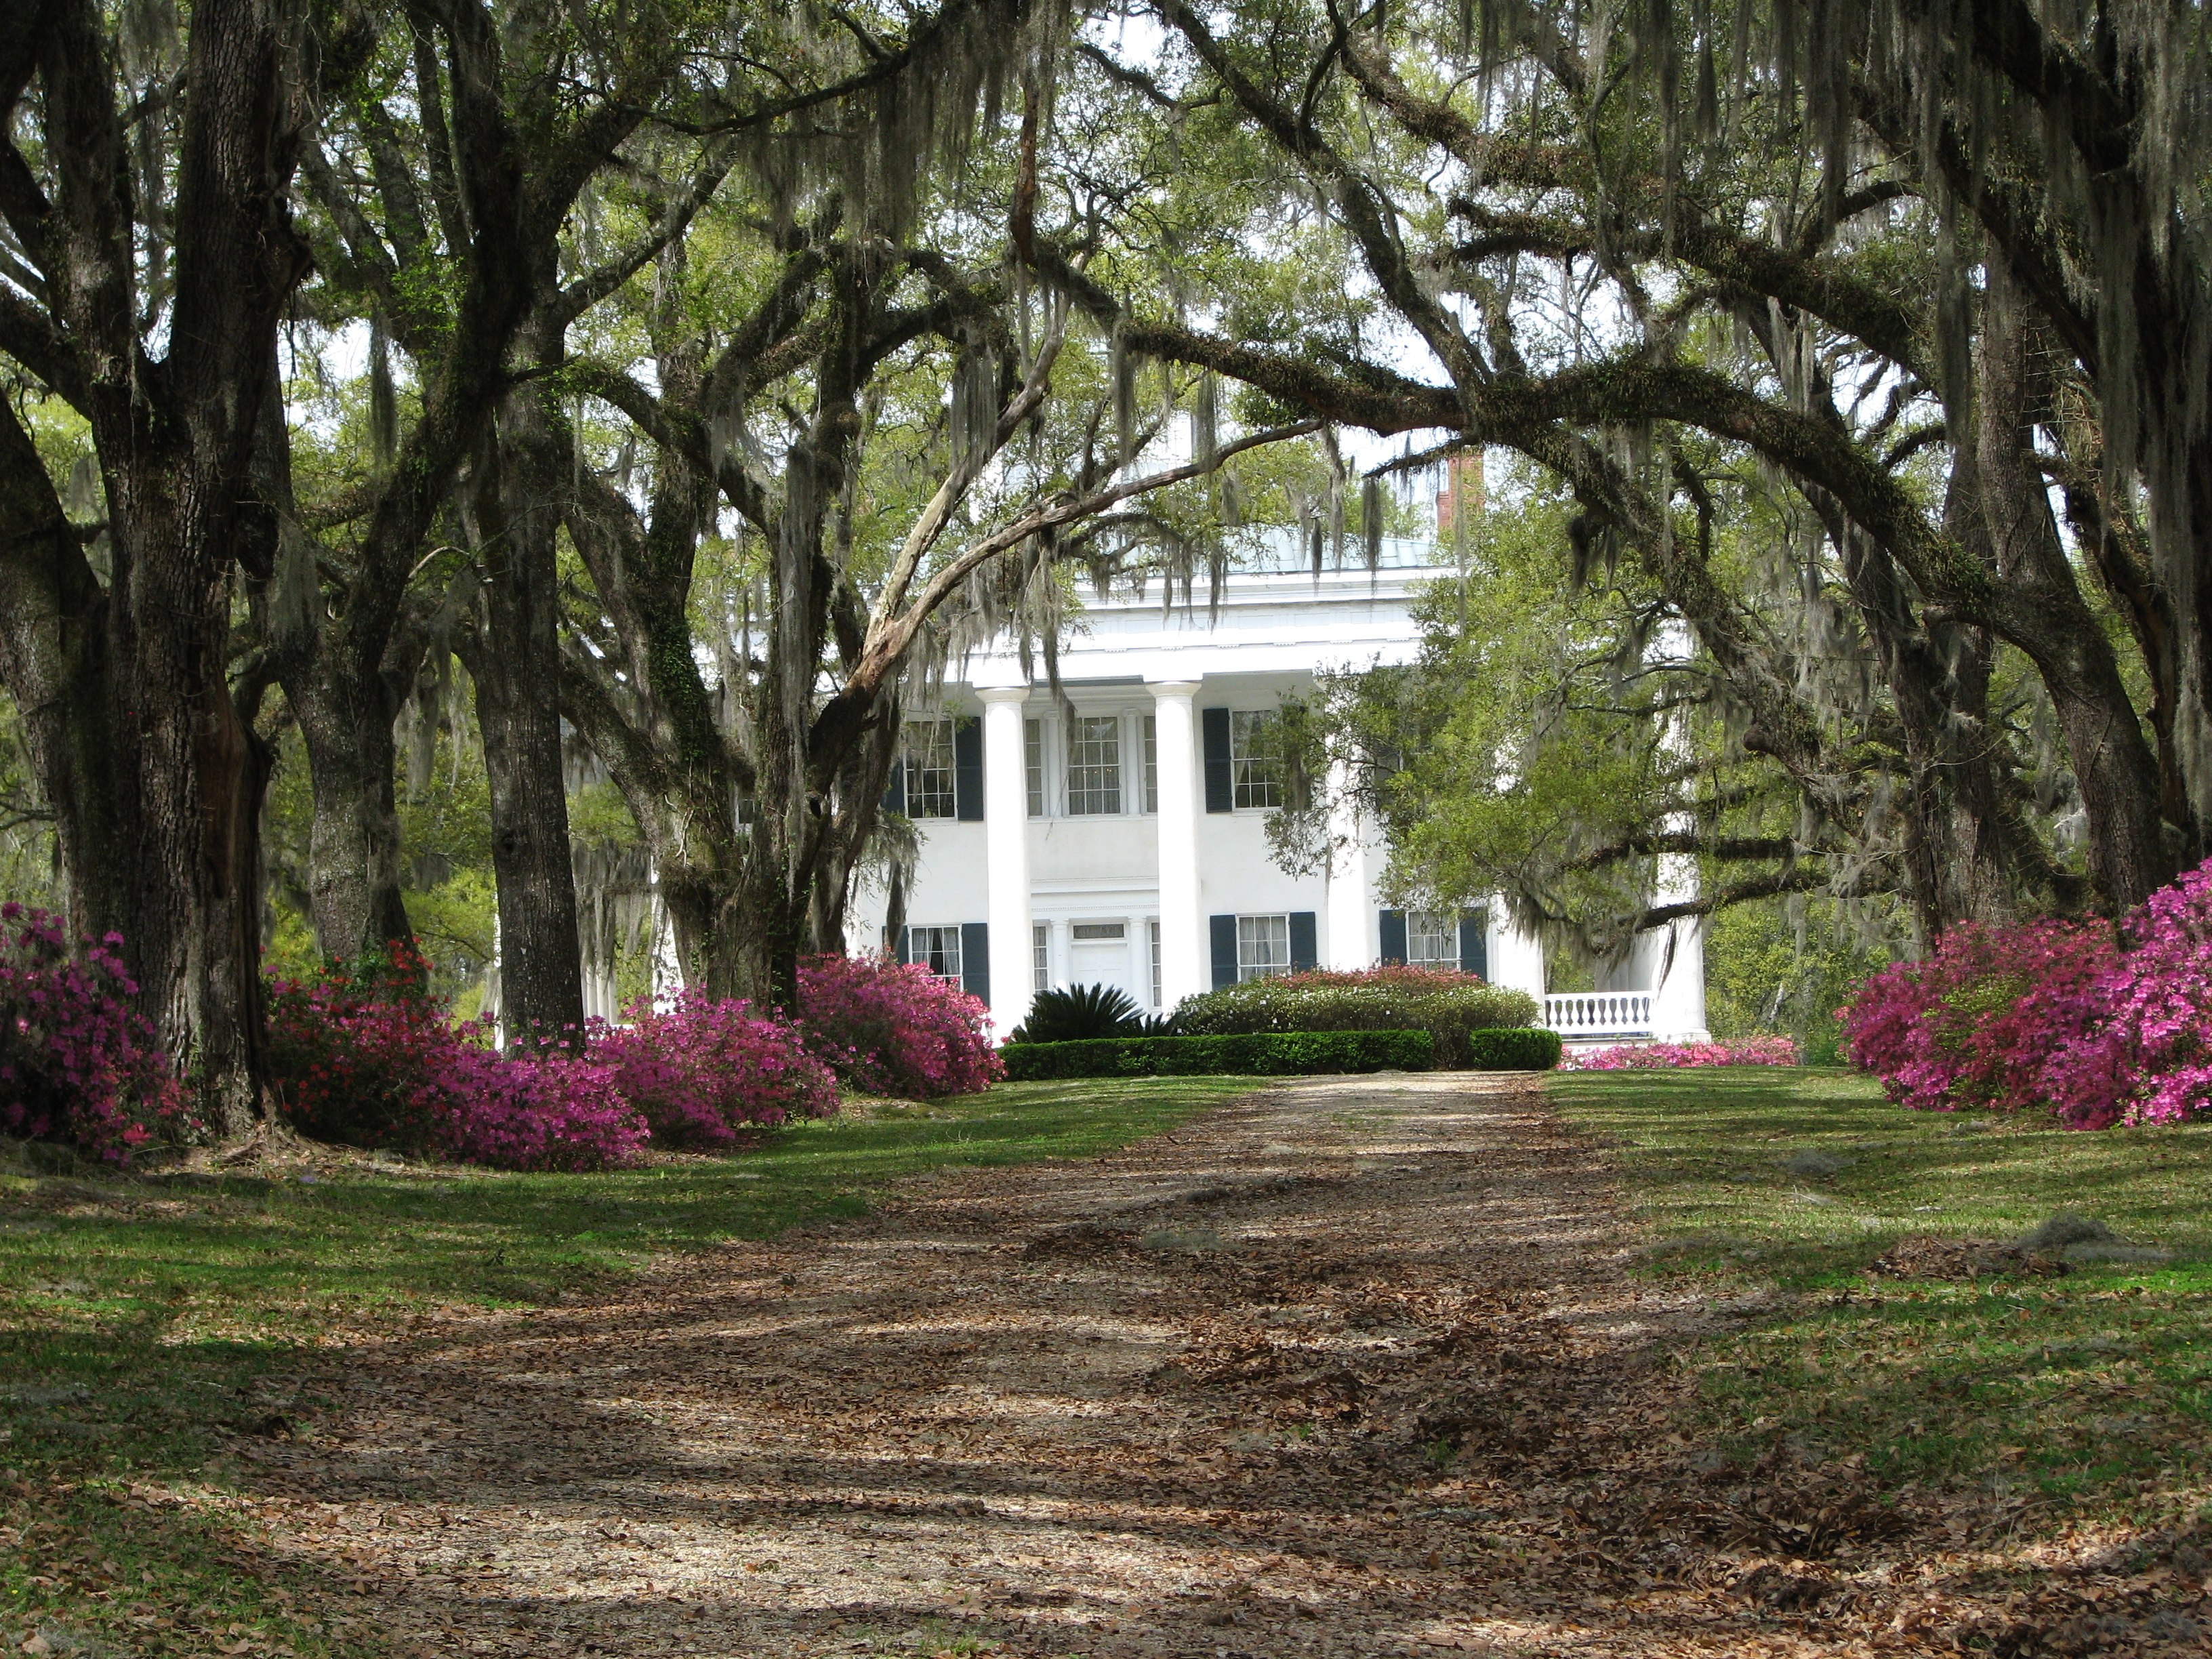 Louisiana plantations kathryn spurgeon for Antebellum plantations for sale